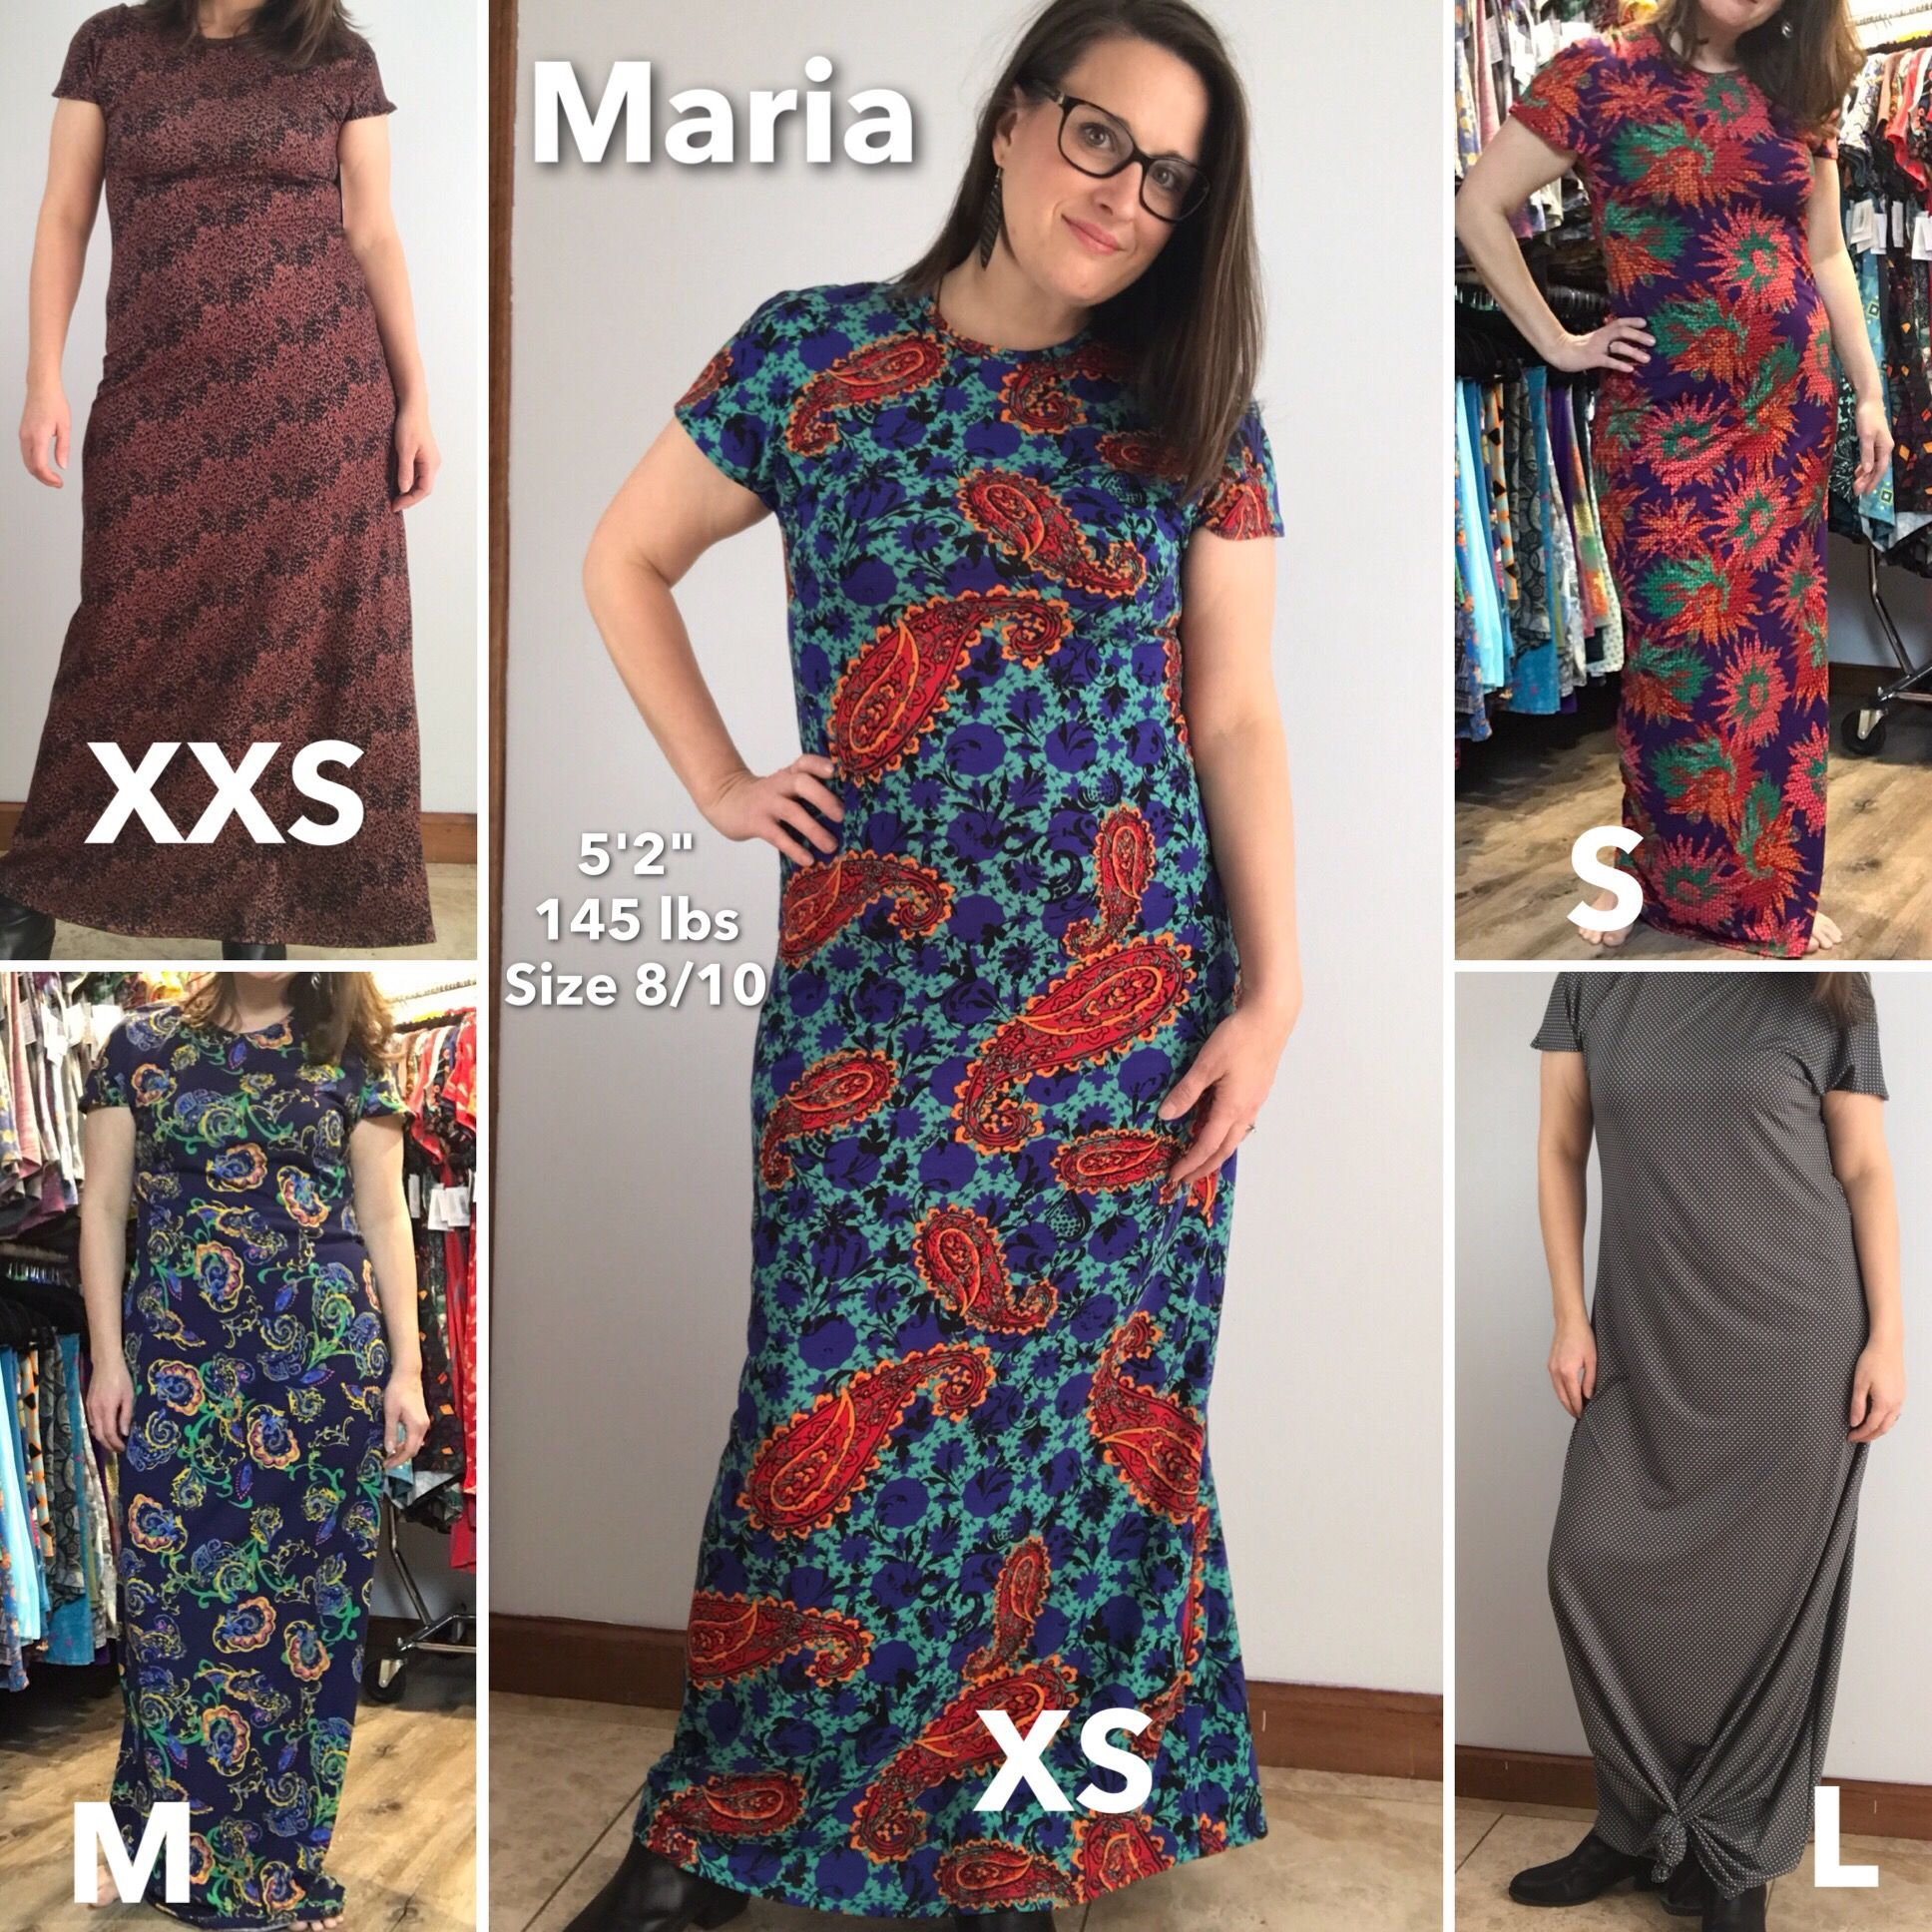 c60c9123929 Lularoe Maria dress worn in different sizes.